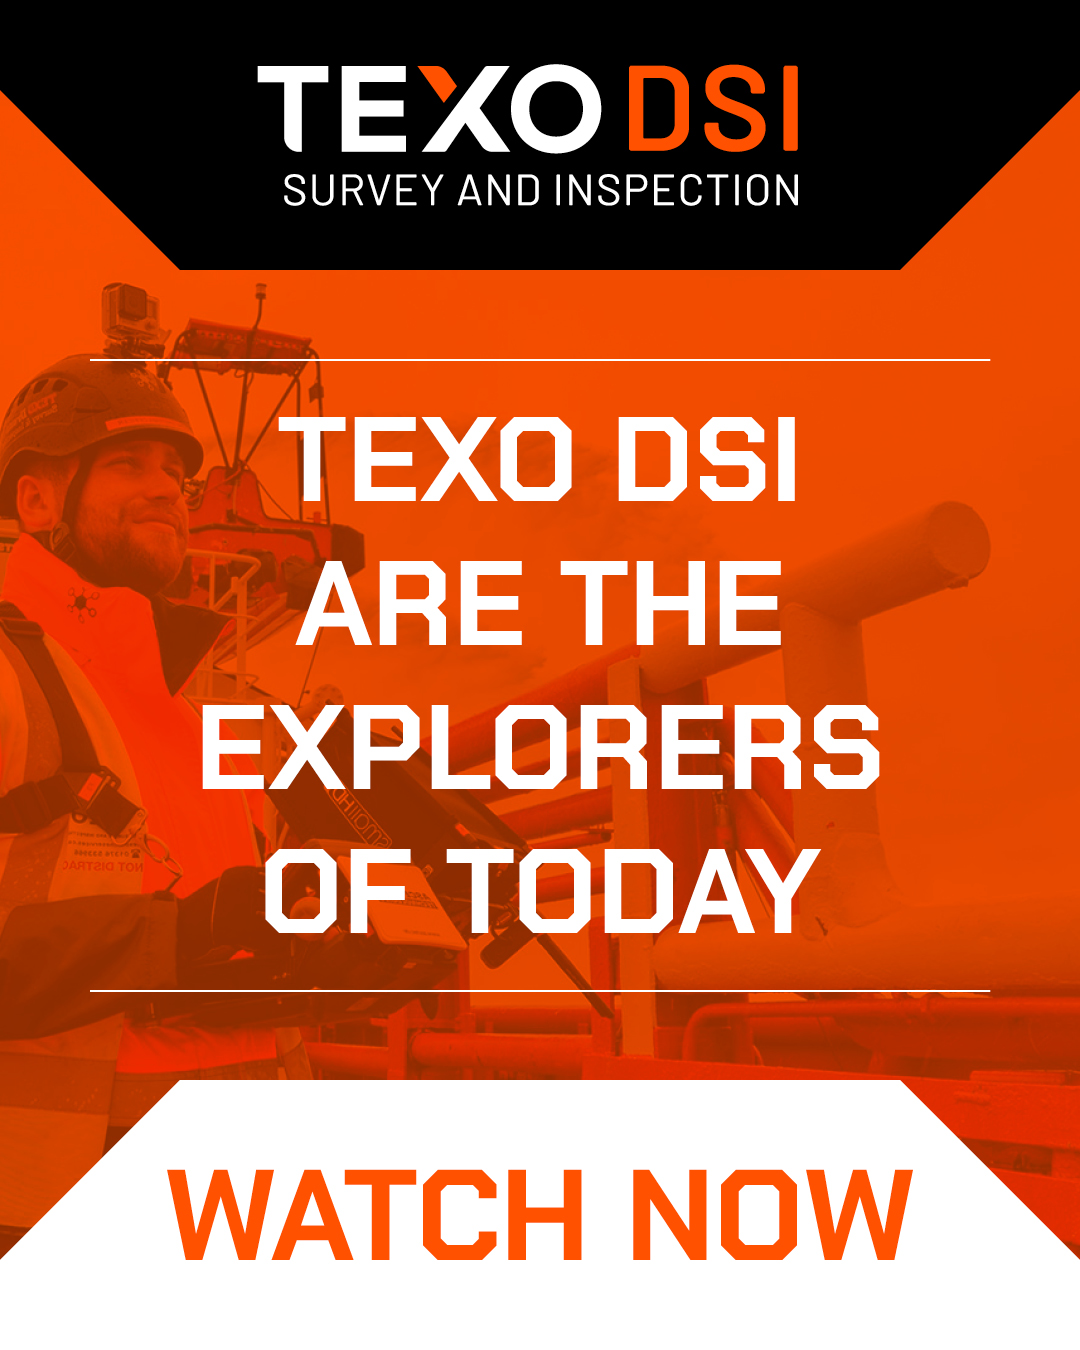 See Why Texo Dsi Are The Explorers Of Today